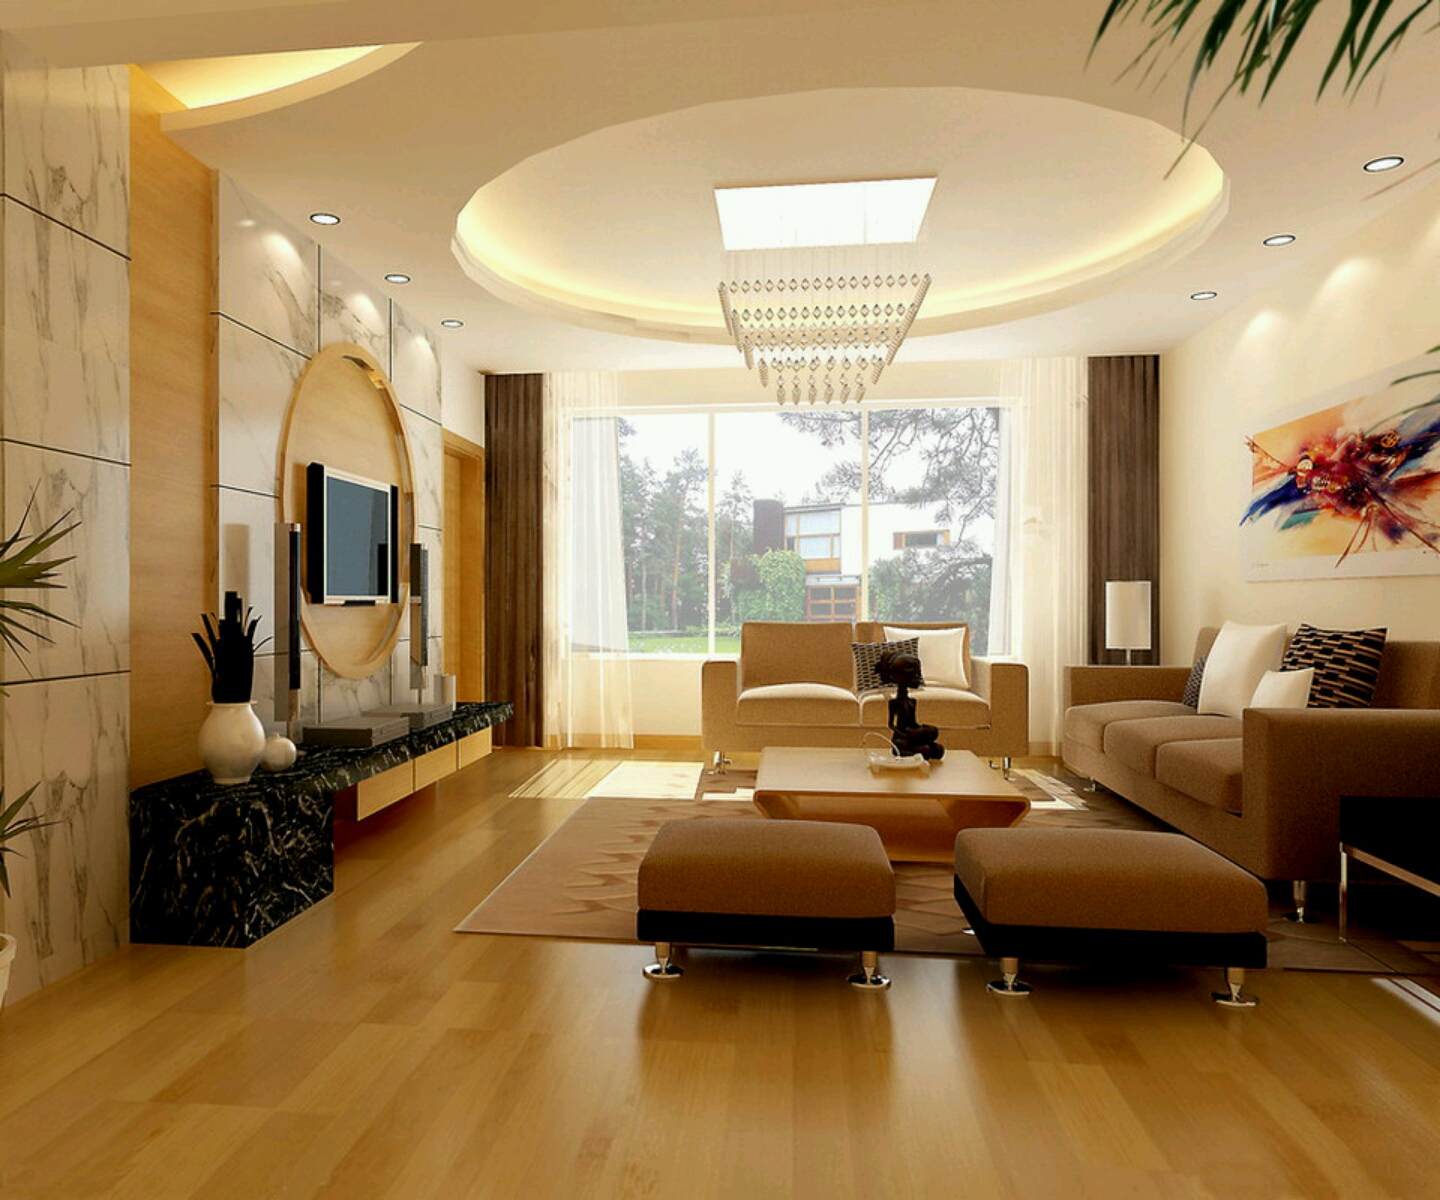 Modern interior decoration living rooms ceiling designs Interior decoration for living room